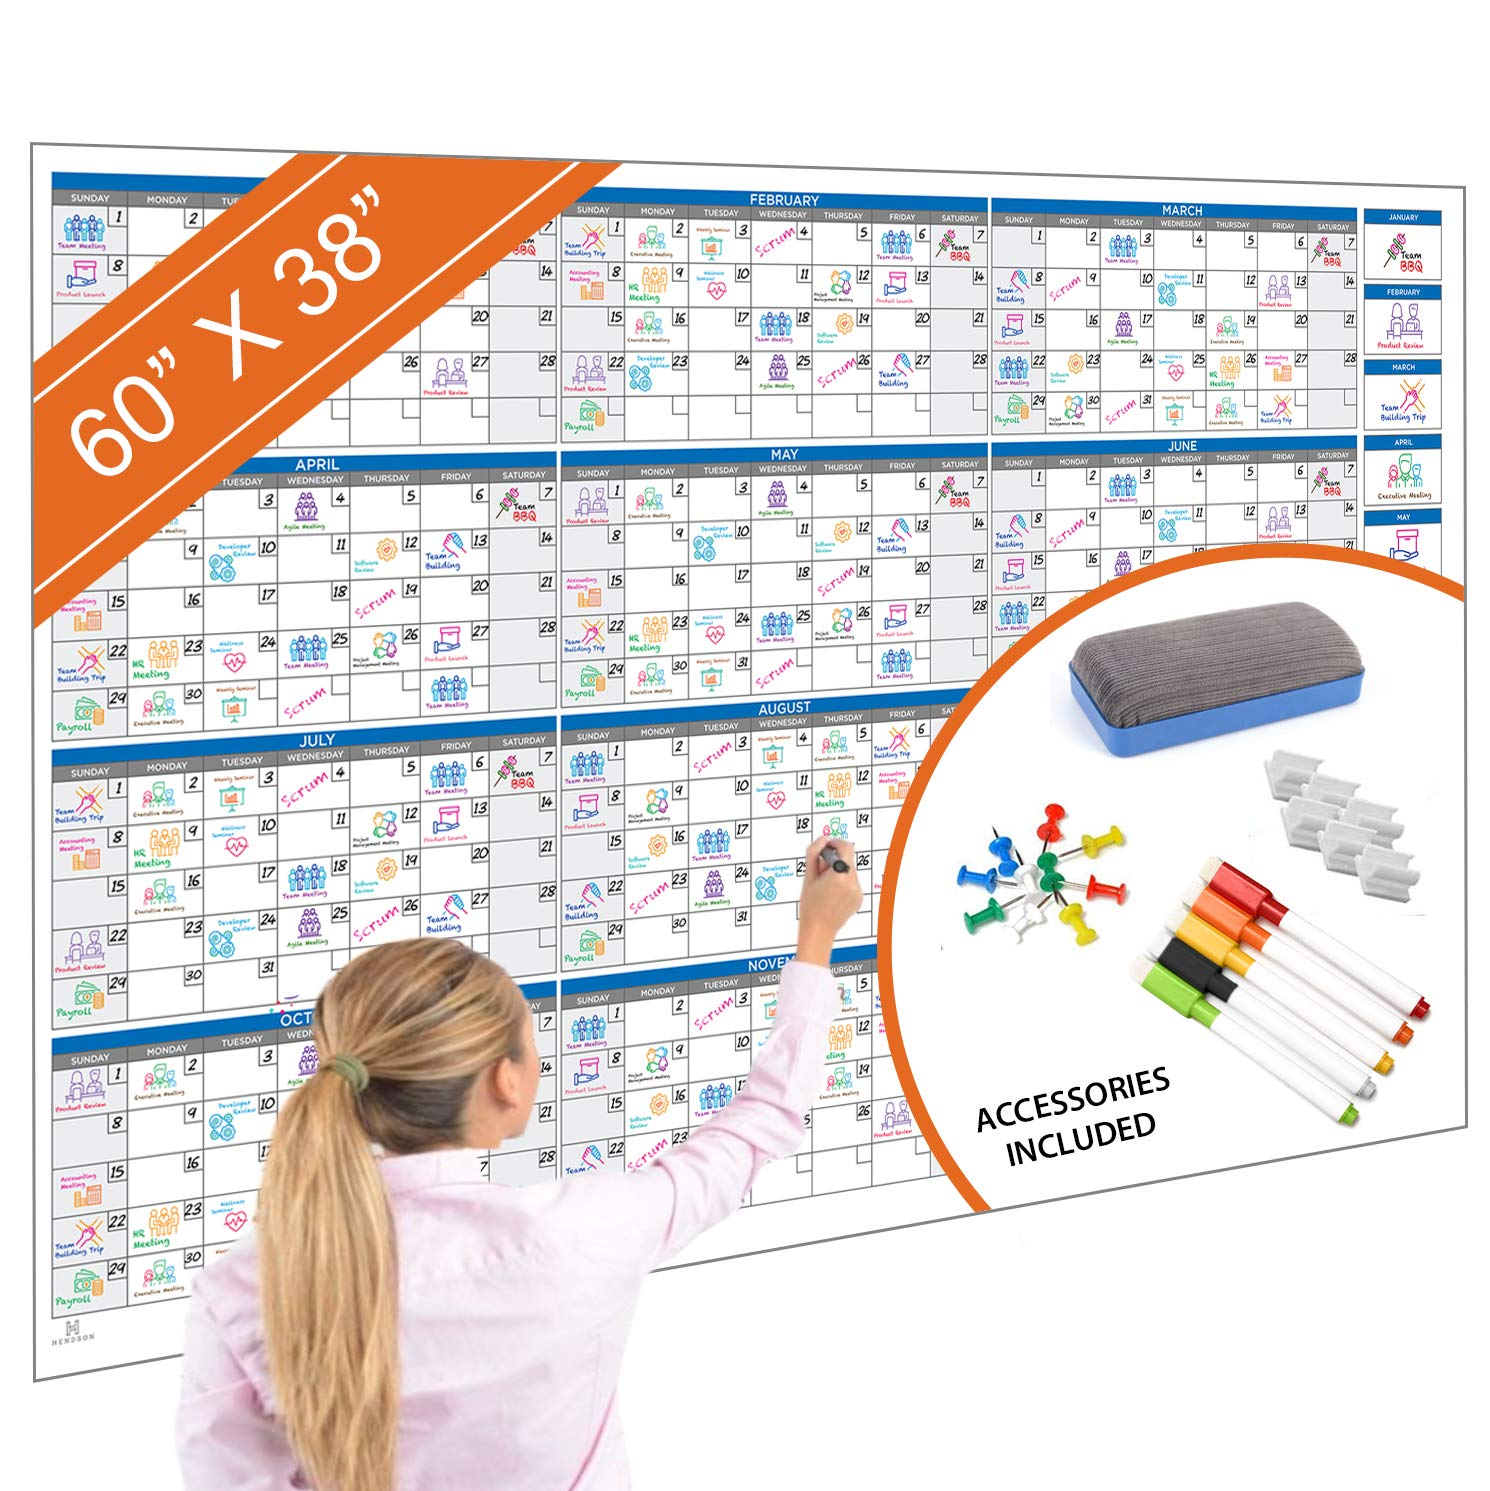 Large Dry Erase Wall Calendar - 60'' x 38'' - Undated Jumbo Laminated Yearly Planner Organizer - Giant Erasable Oversized Weekly, Monthly, Fiscal, Academic Year Whiteboard - Office or Classroom Calandar by Hendson